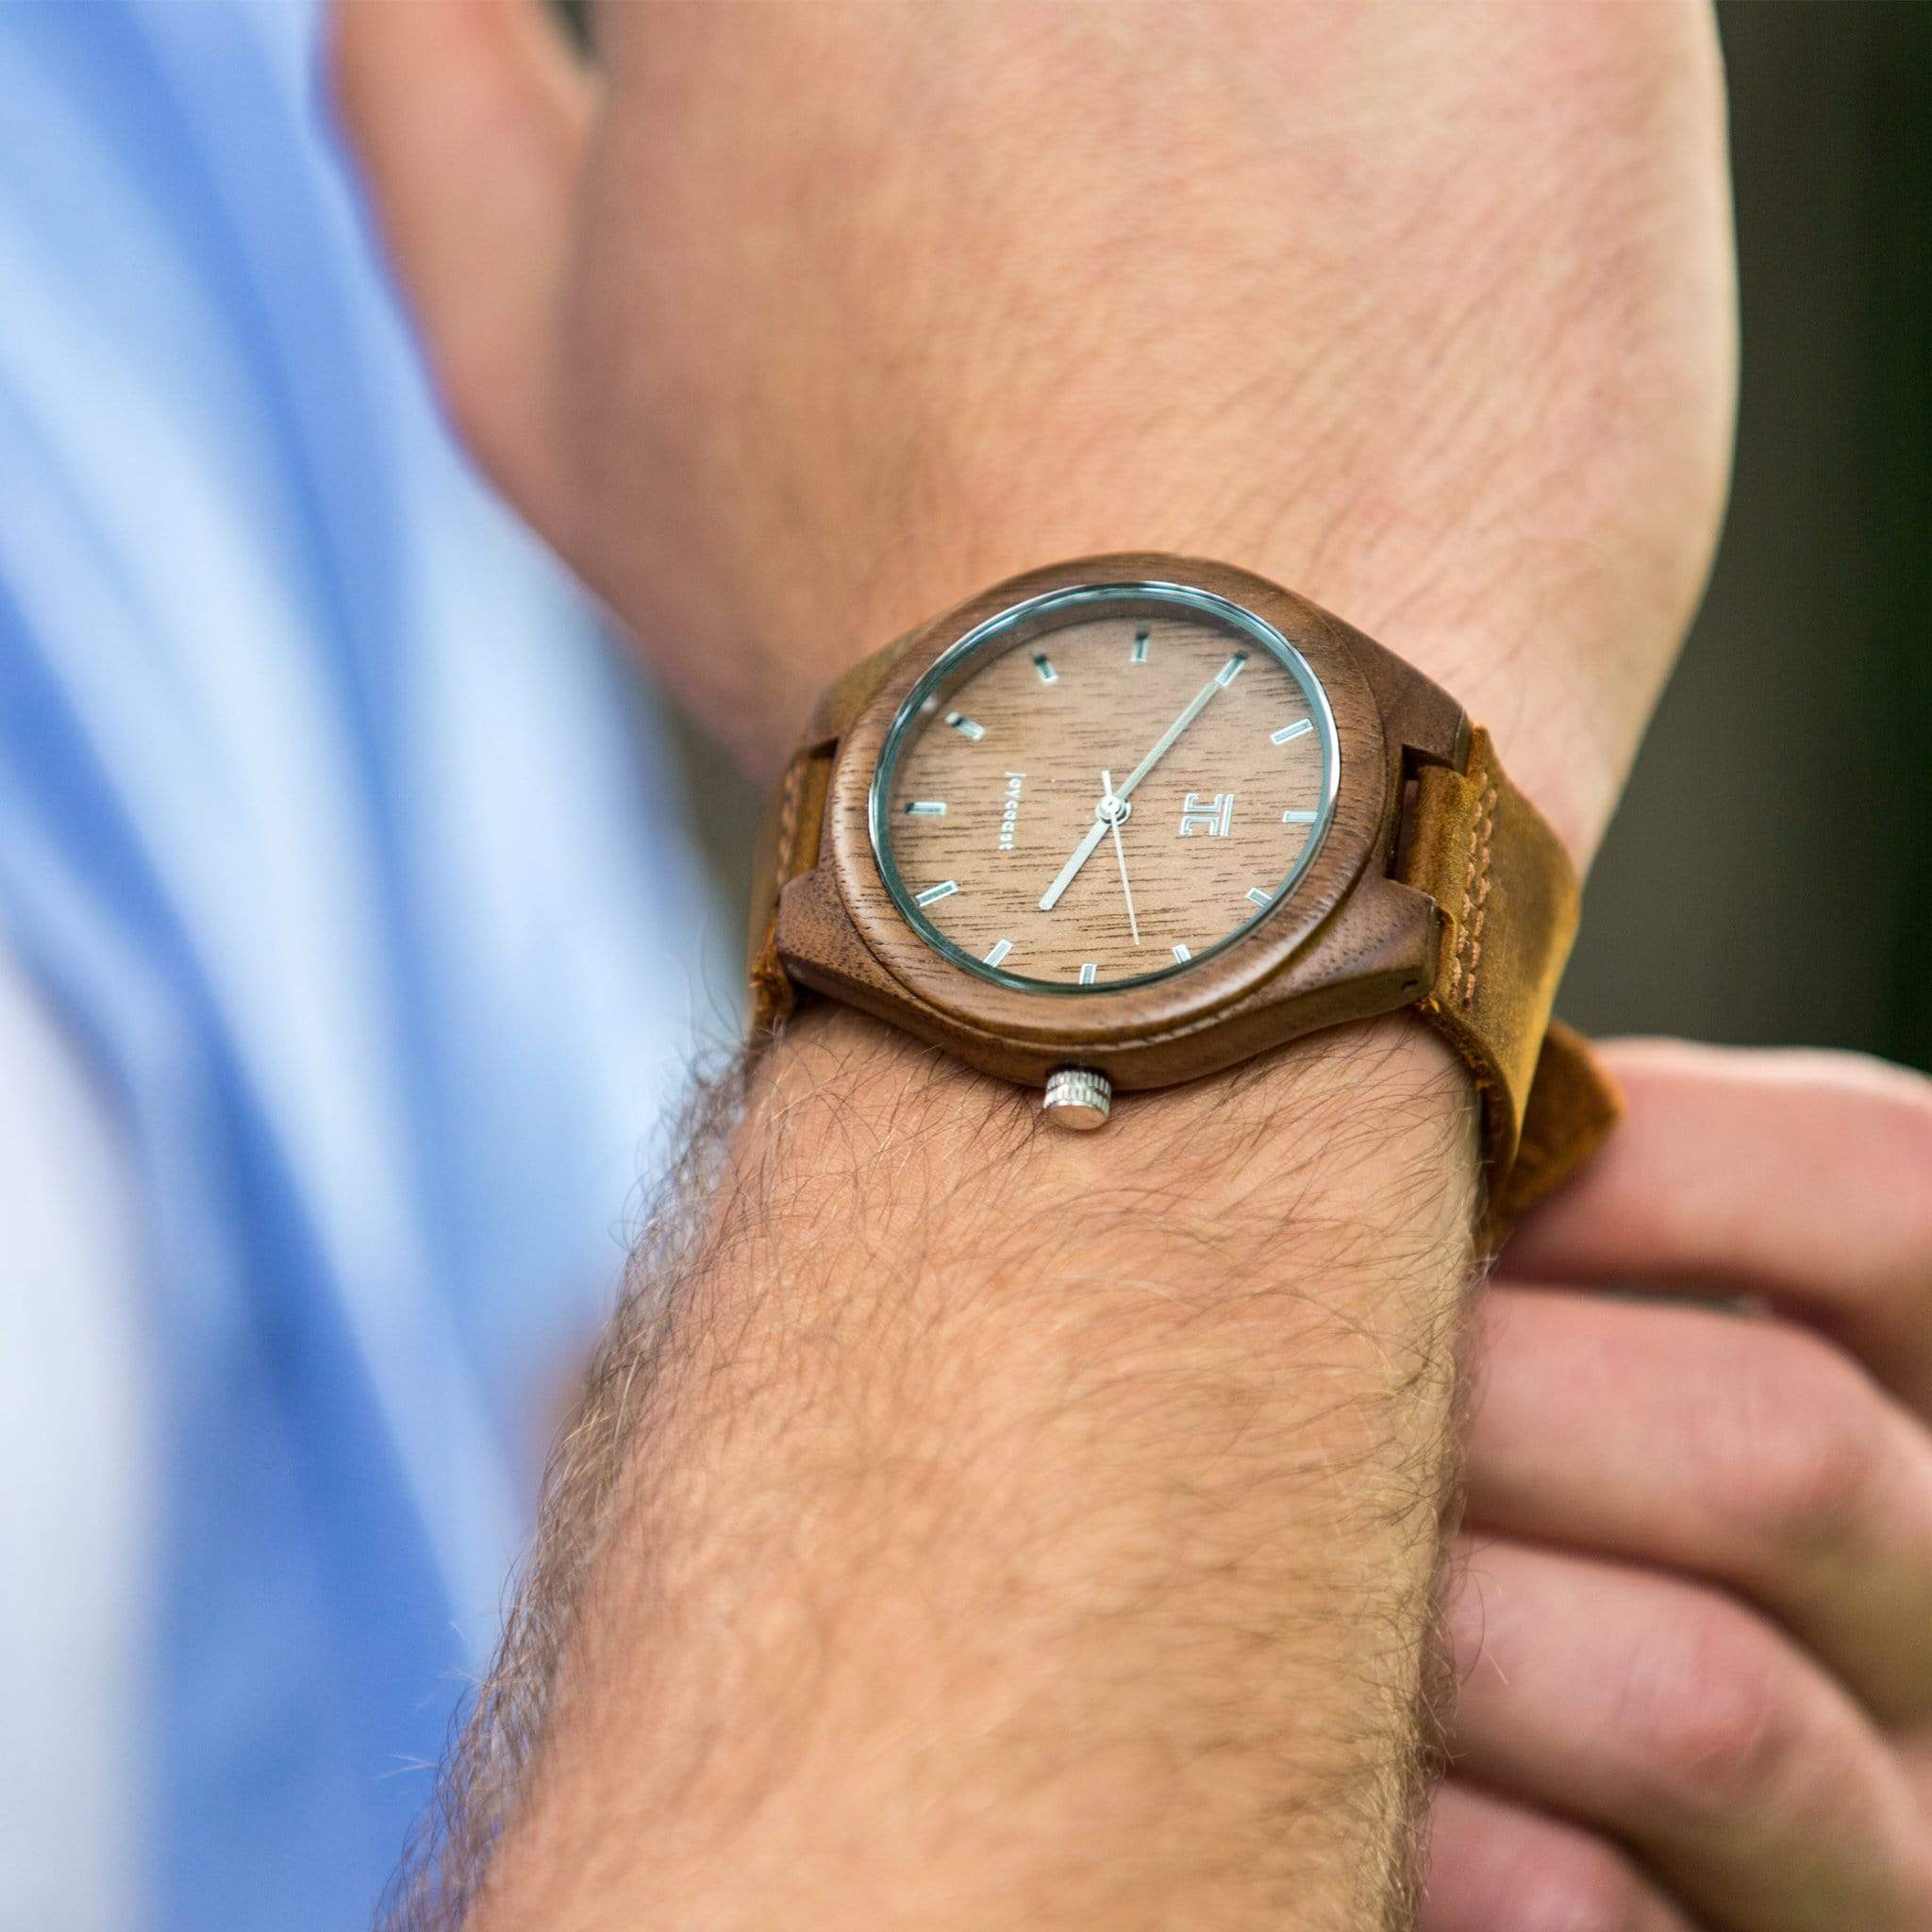 Walnut with Genuine Leather Strap - Wooden Watches and Sunglasses - Joycoast